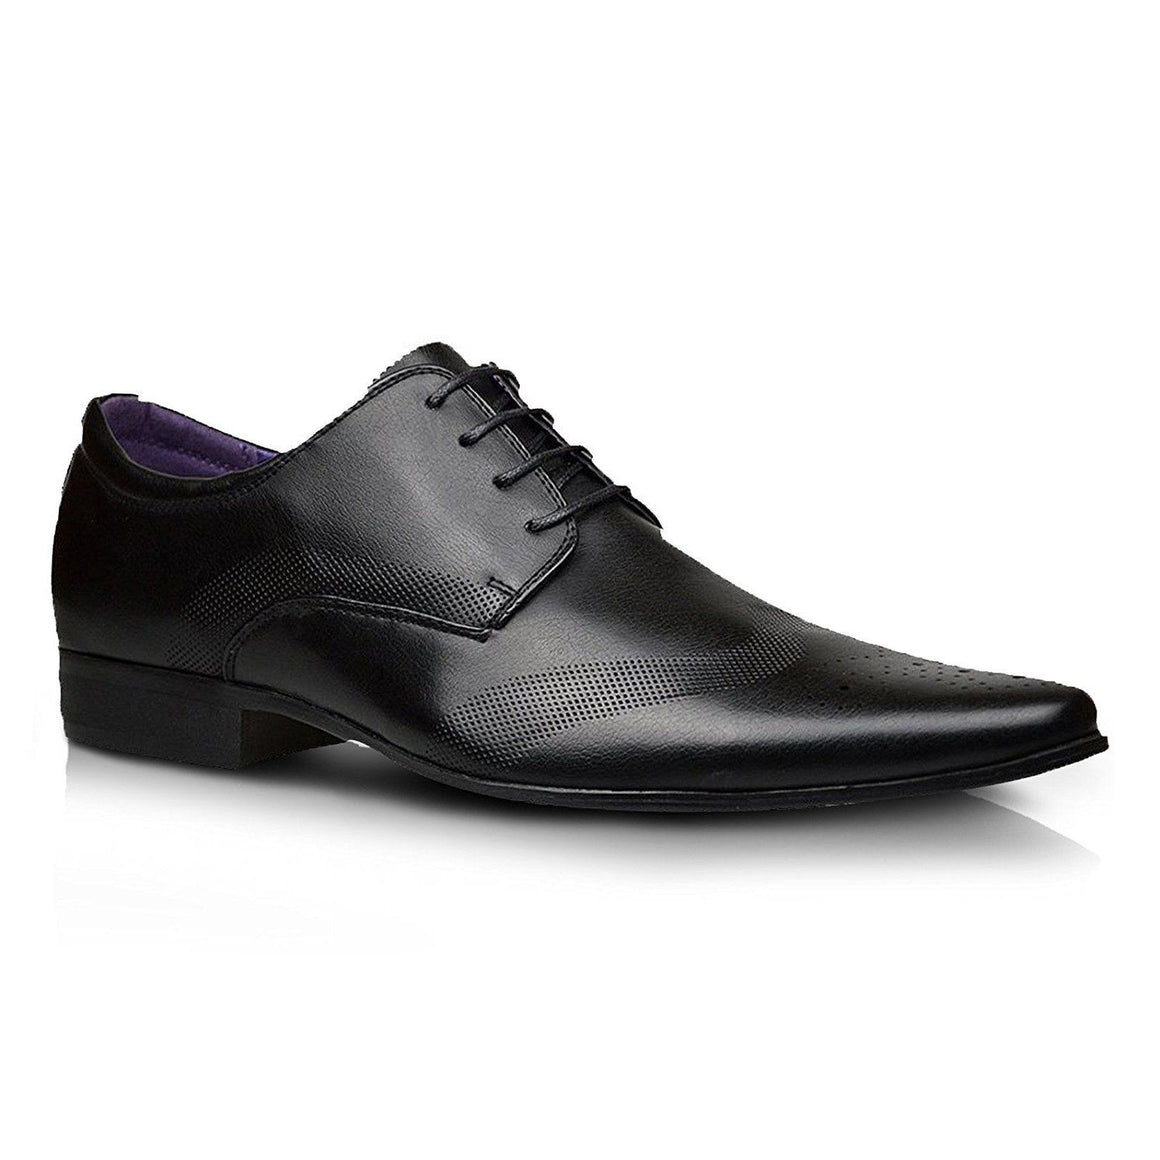 Mens Leather Lined Formal Office Dress Lace Up Smart Brogues